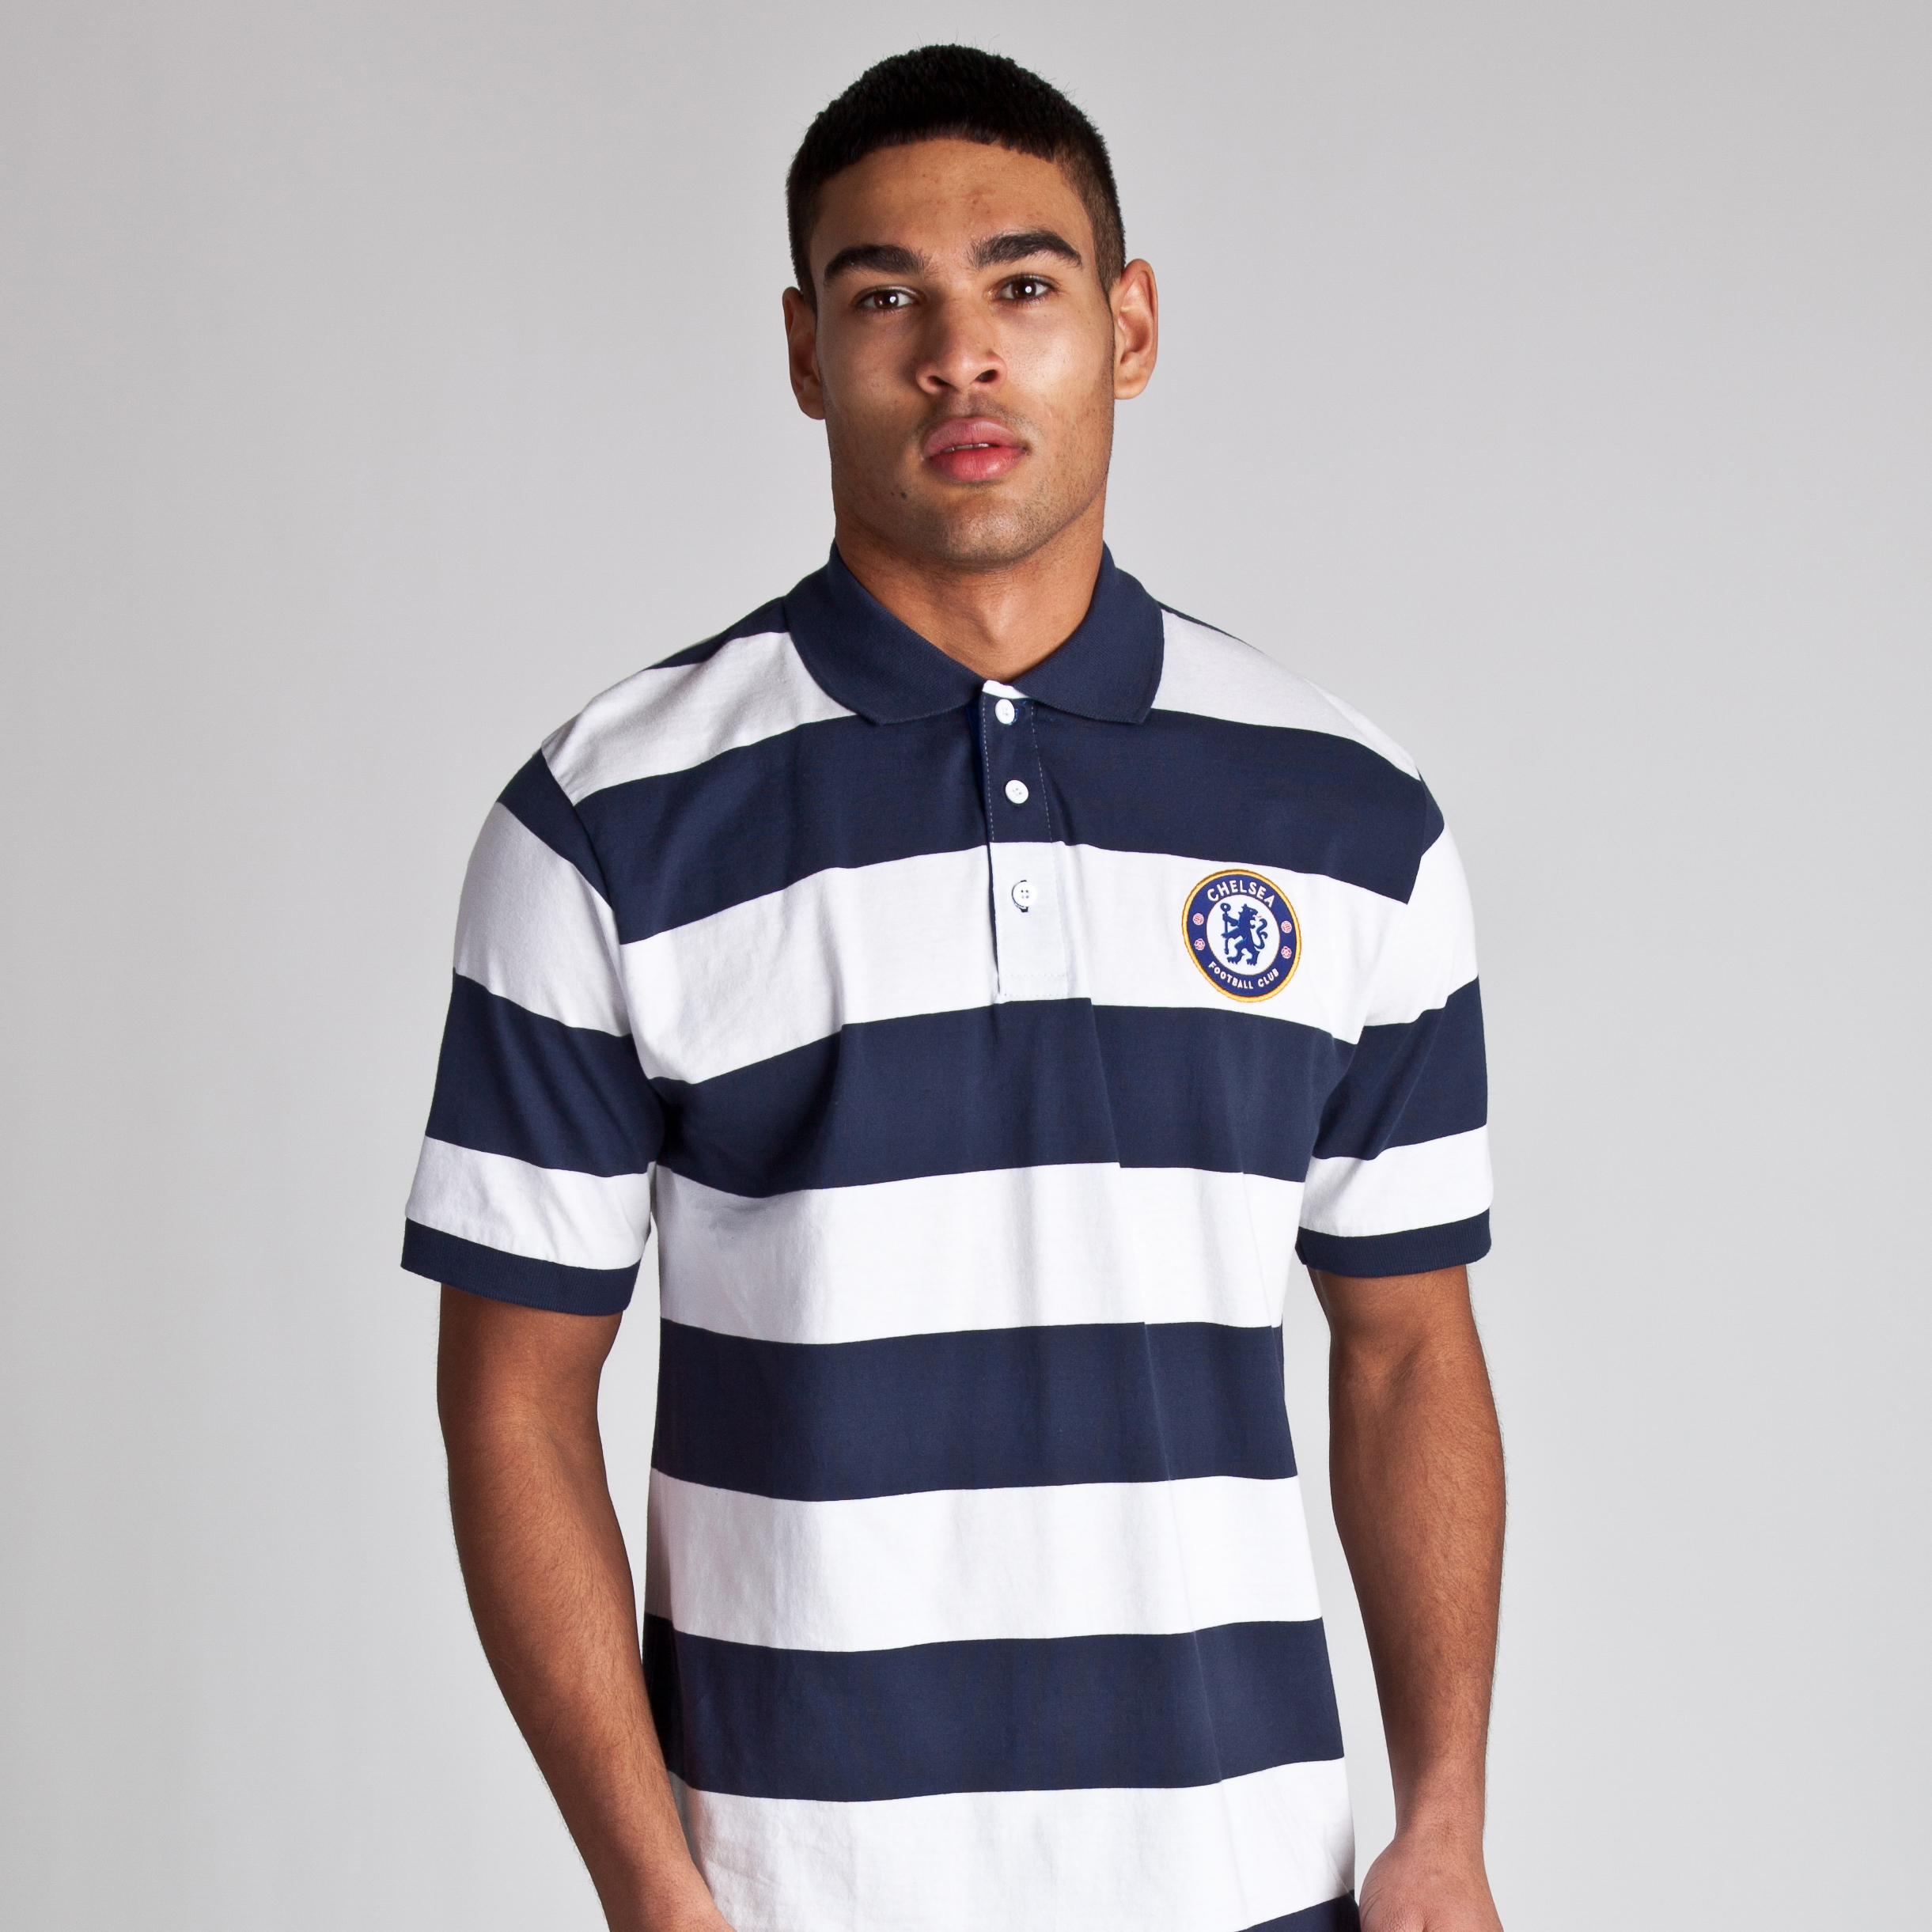 Chelsea Core Yarn Dye Striped Polo - Navy/White